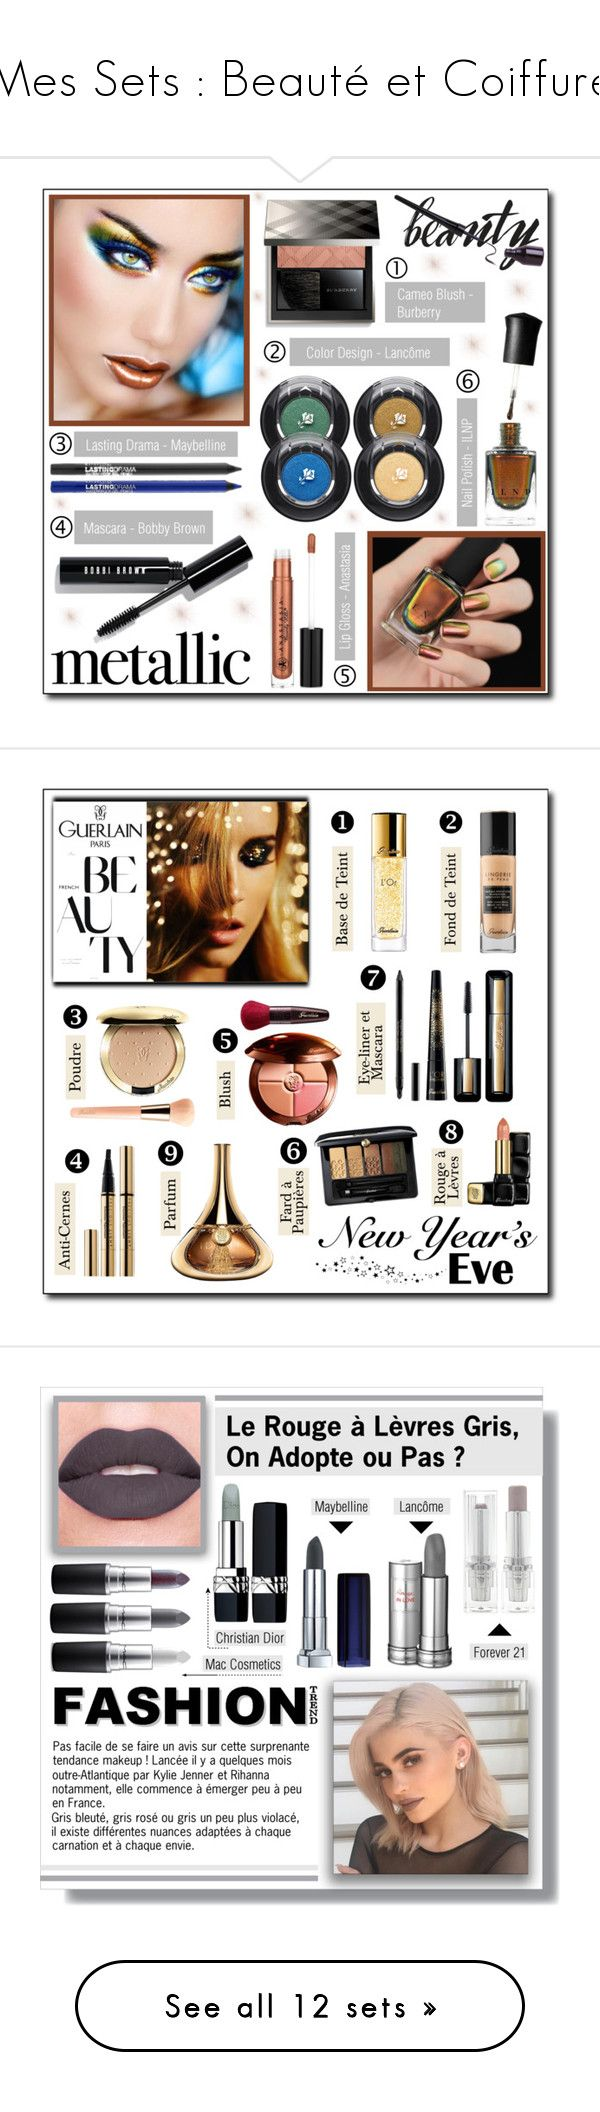 """Mes Sets : Beauté et Coiffure"" by drinouchou ❤ liked on Polyvore featuring beauty, Deborah Lippmann, Lancôme, Maybelline, Bobbi Brown Cosmetics, Anastasia Beverly Hills, Burberry, metallicmakeup, Guerlain and nyebeauty"